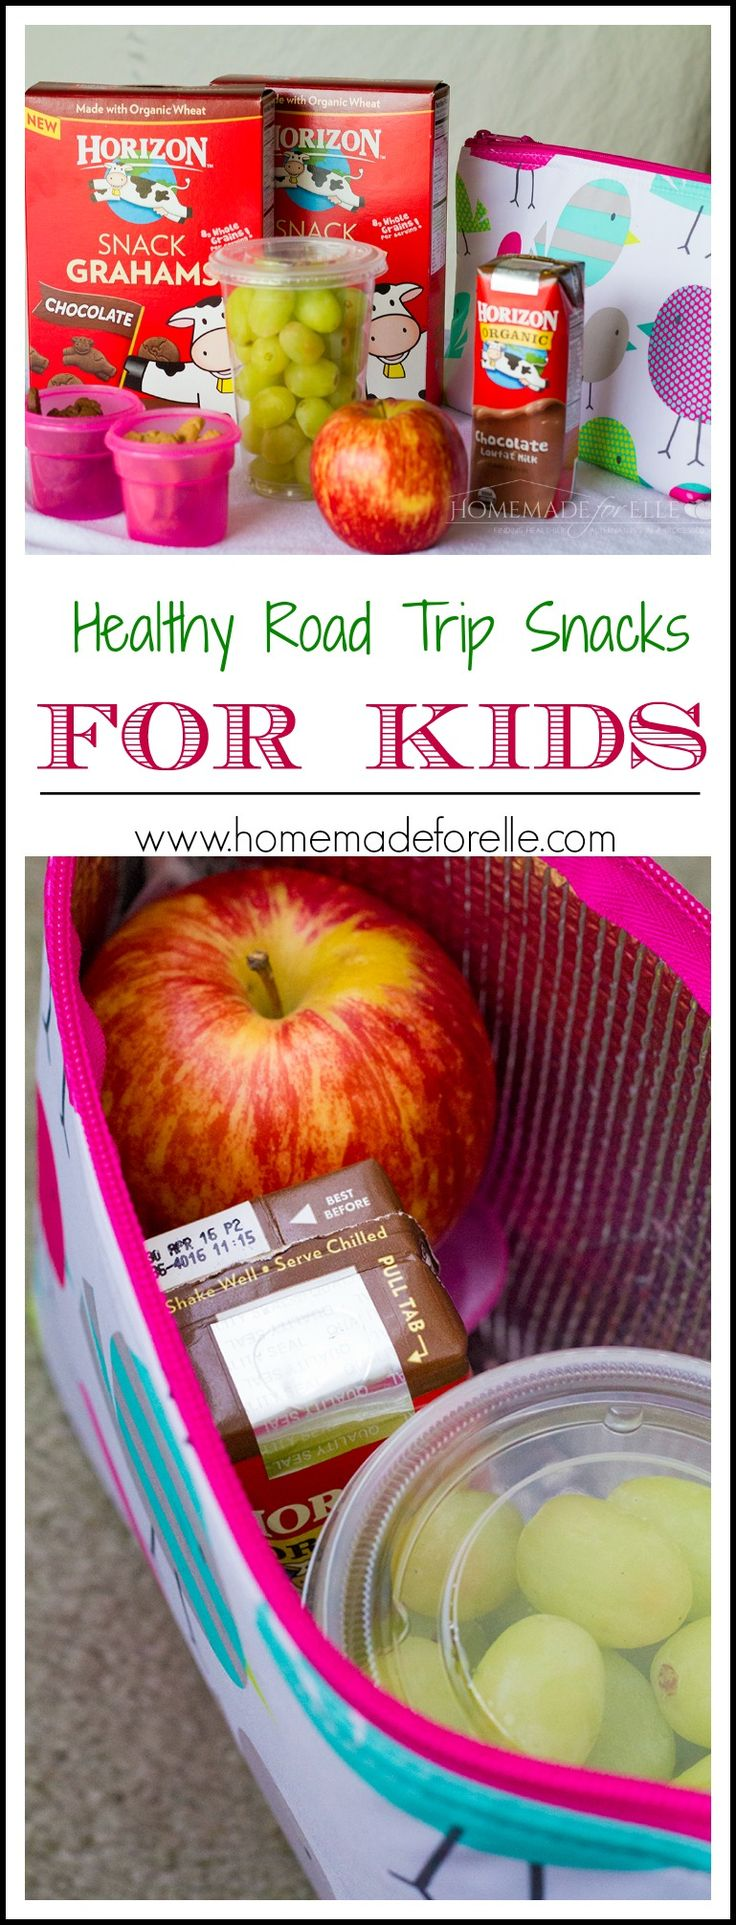 Healthy Road Trip Snacks for Kids | homemadeforelle.com